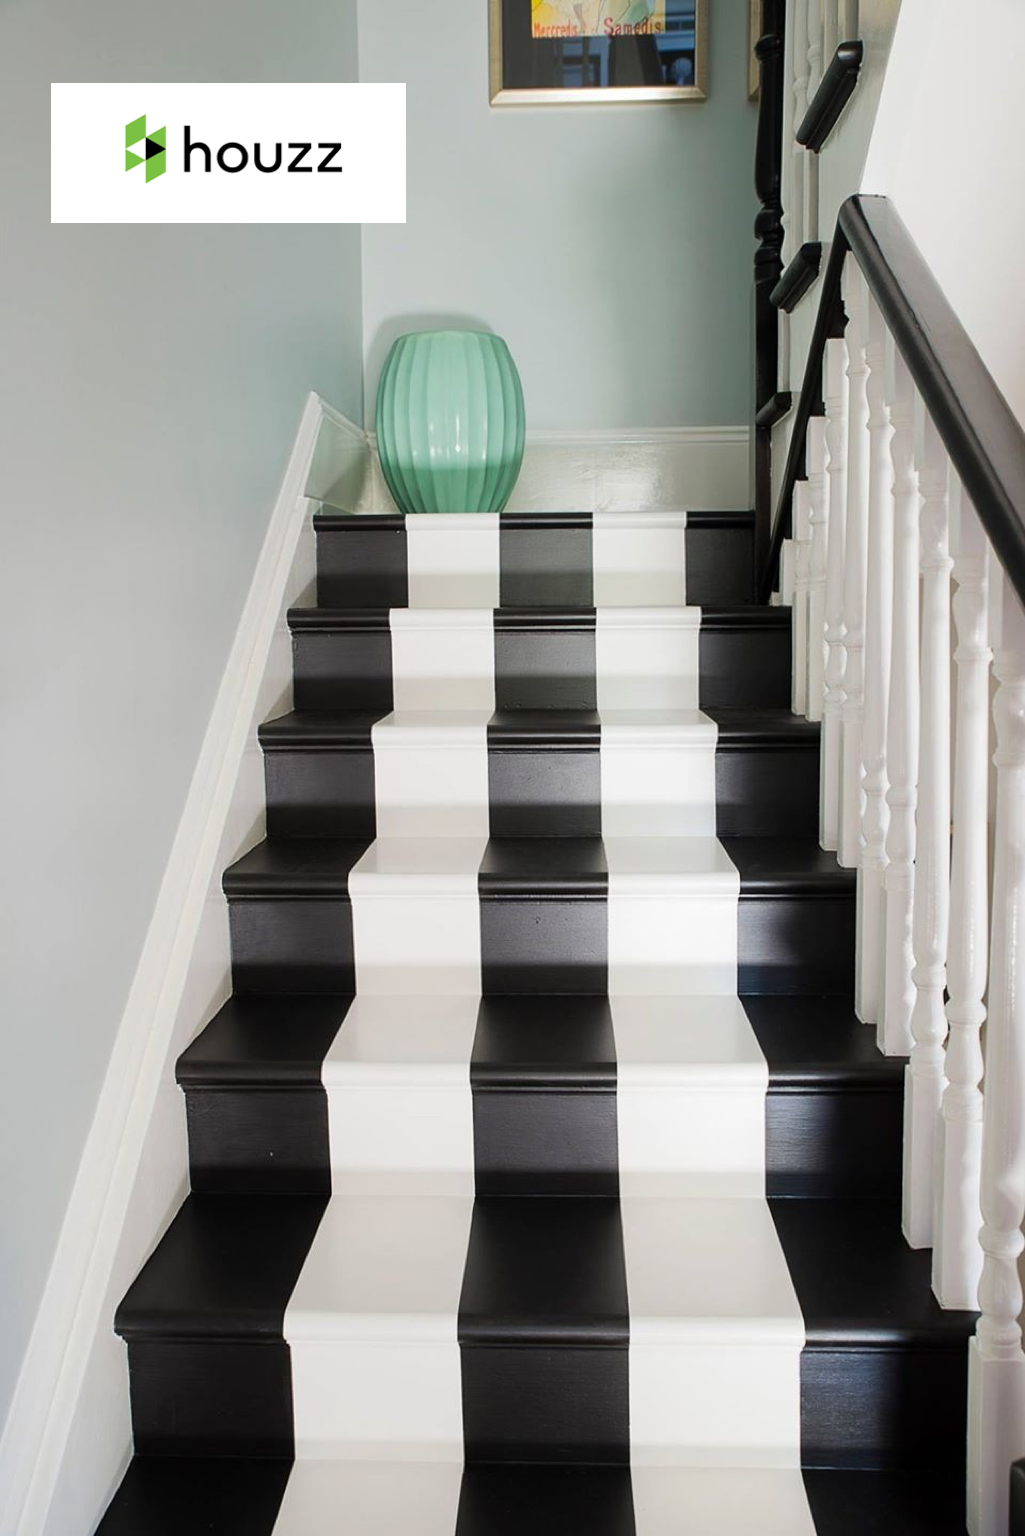 HOUZZ  - September 2014  How to Decorate with Black & White Stripes